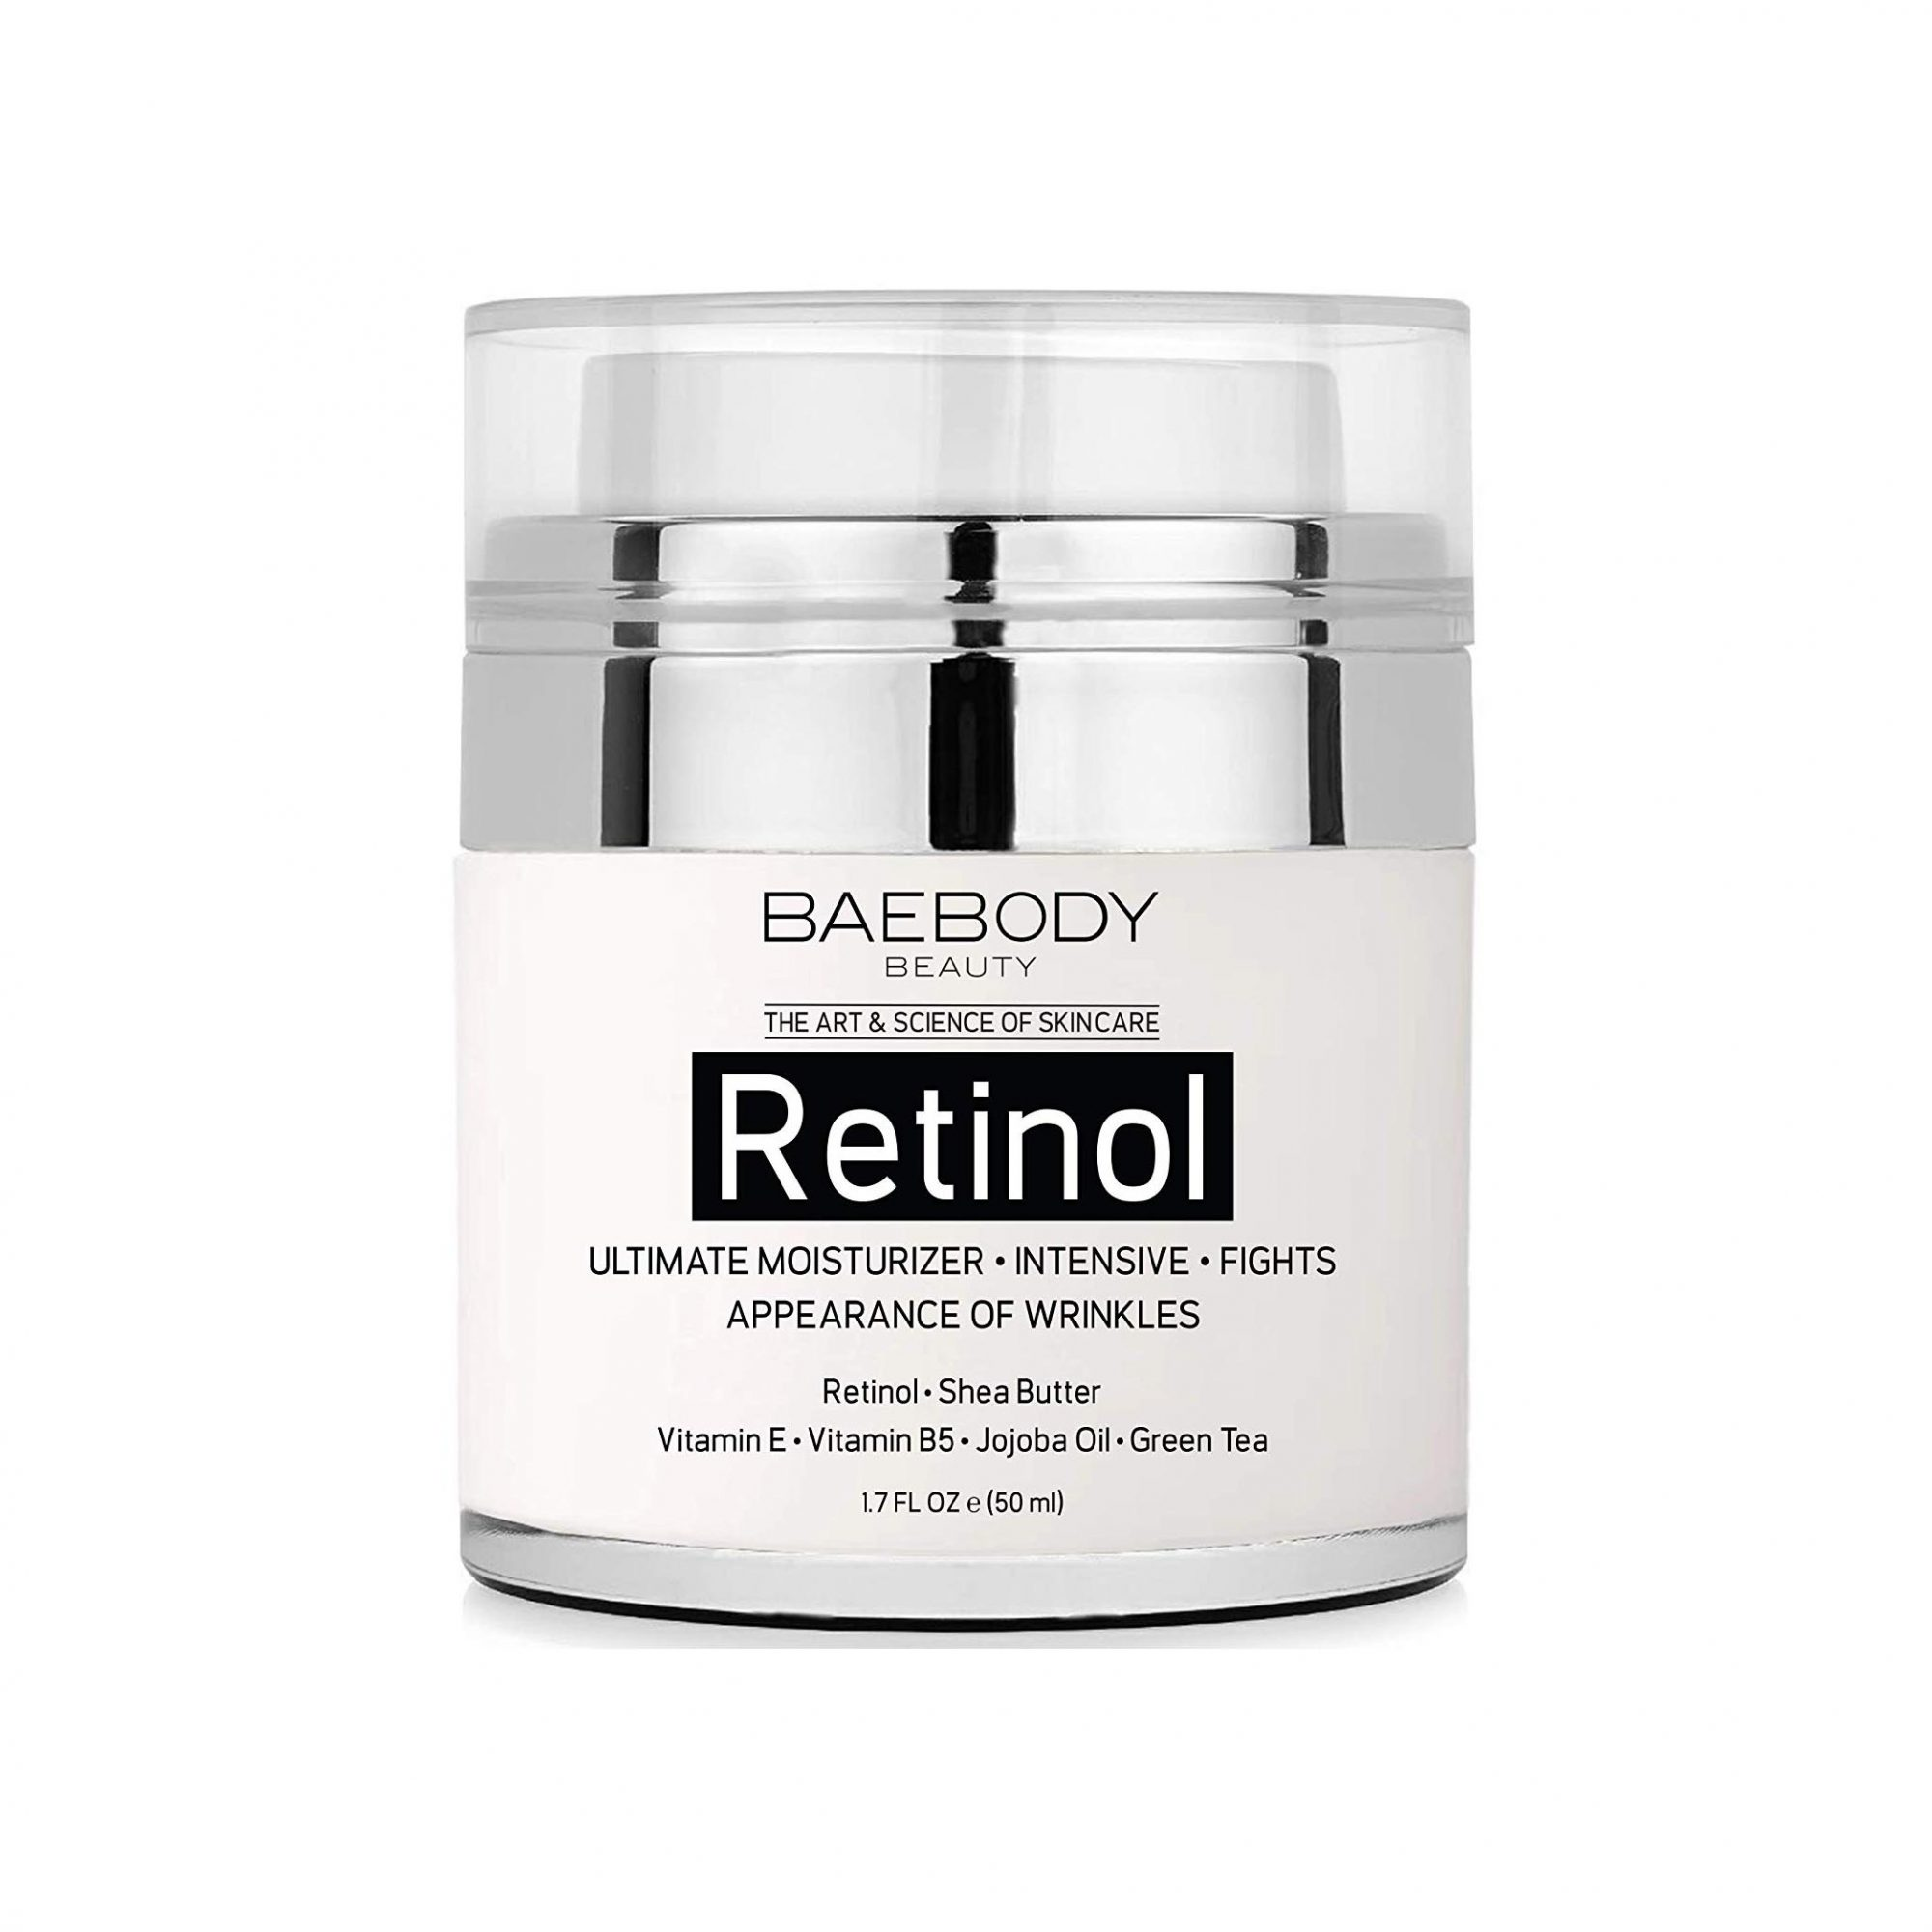 Baebody Retinol Cream